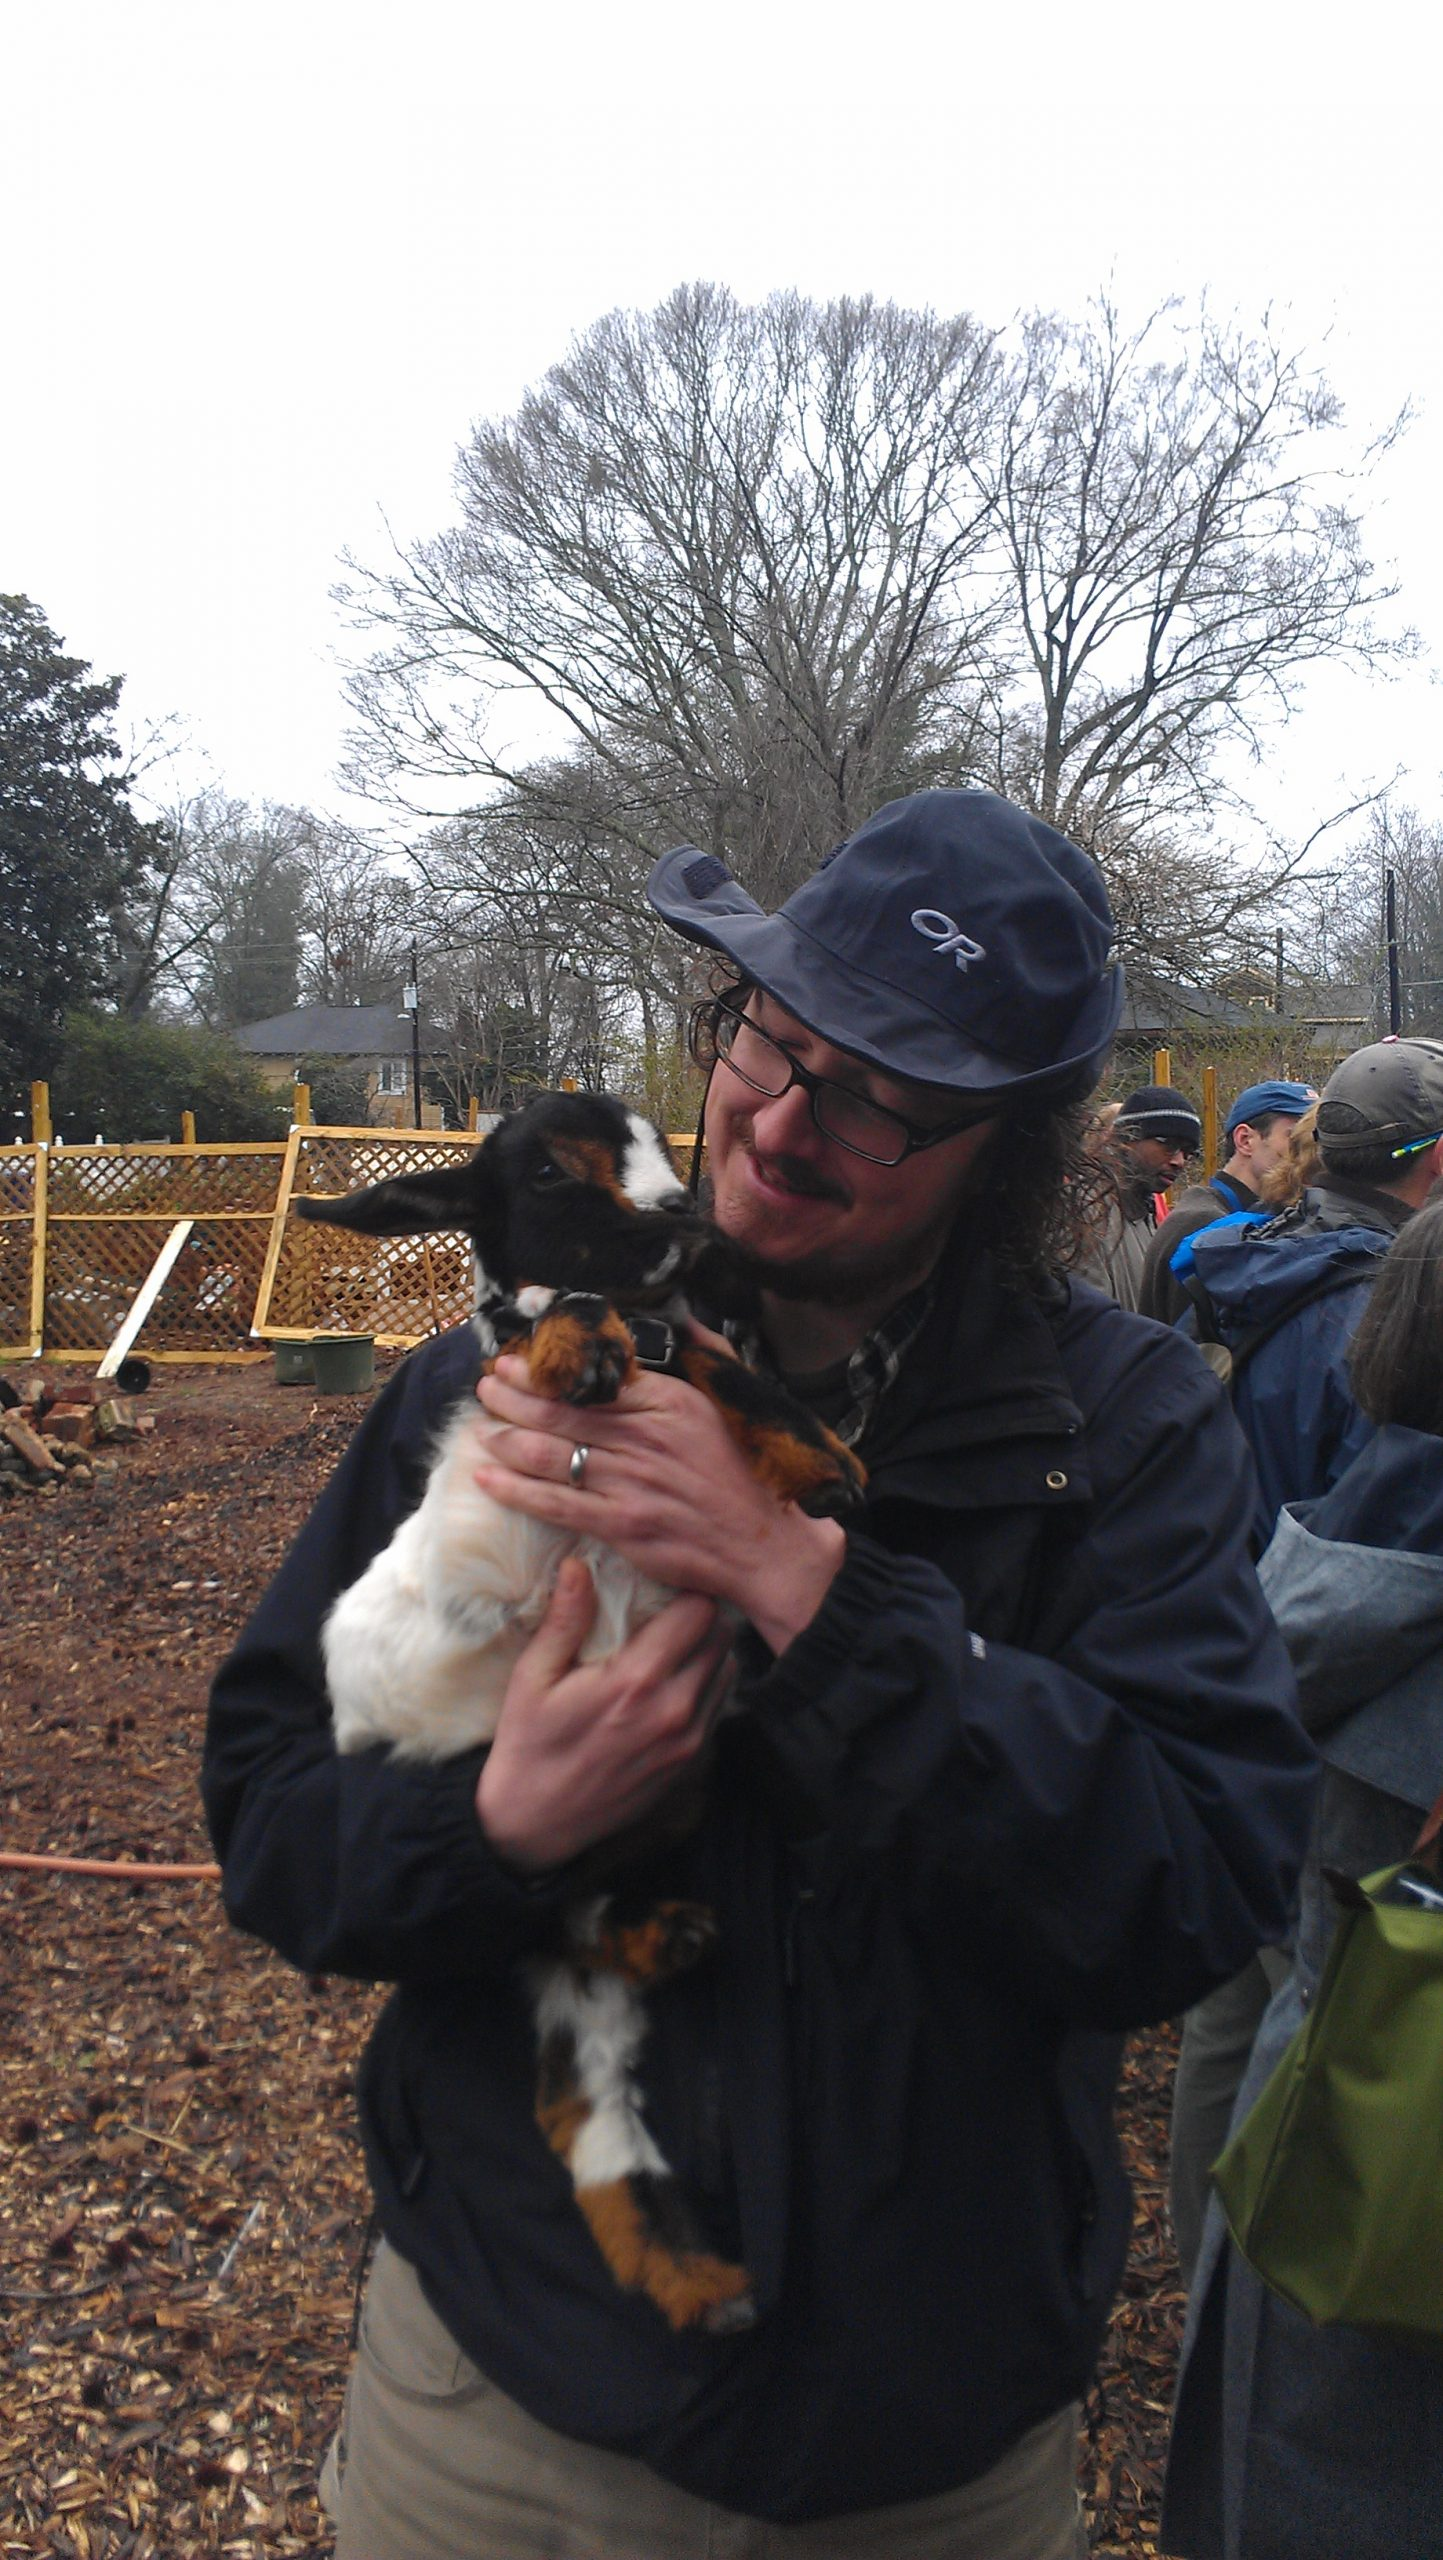 Doug Williams at the East Lake Farm with one its goat residents